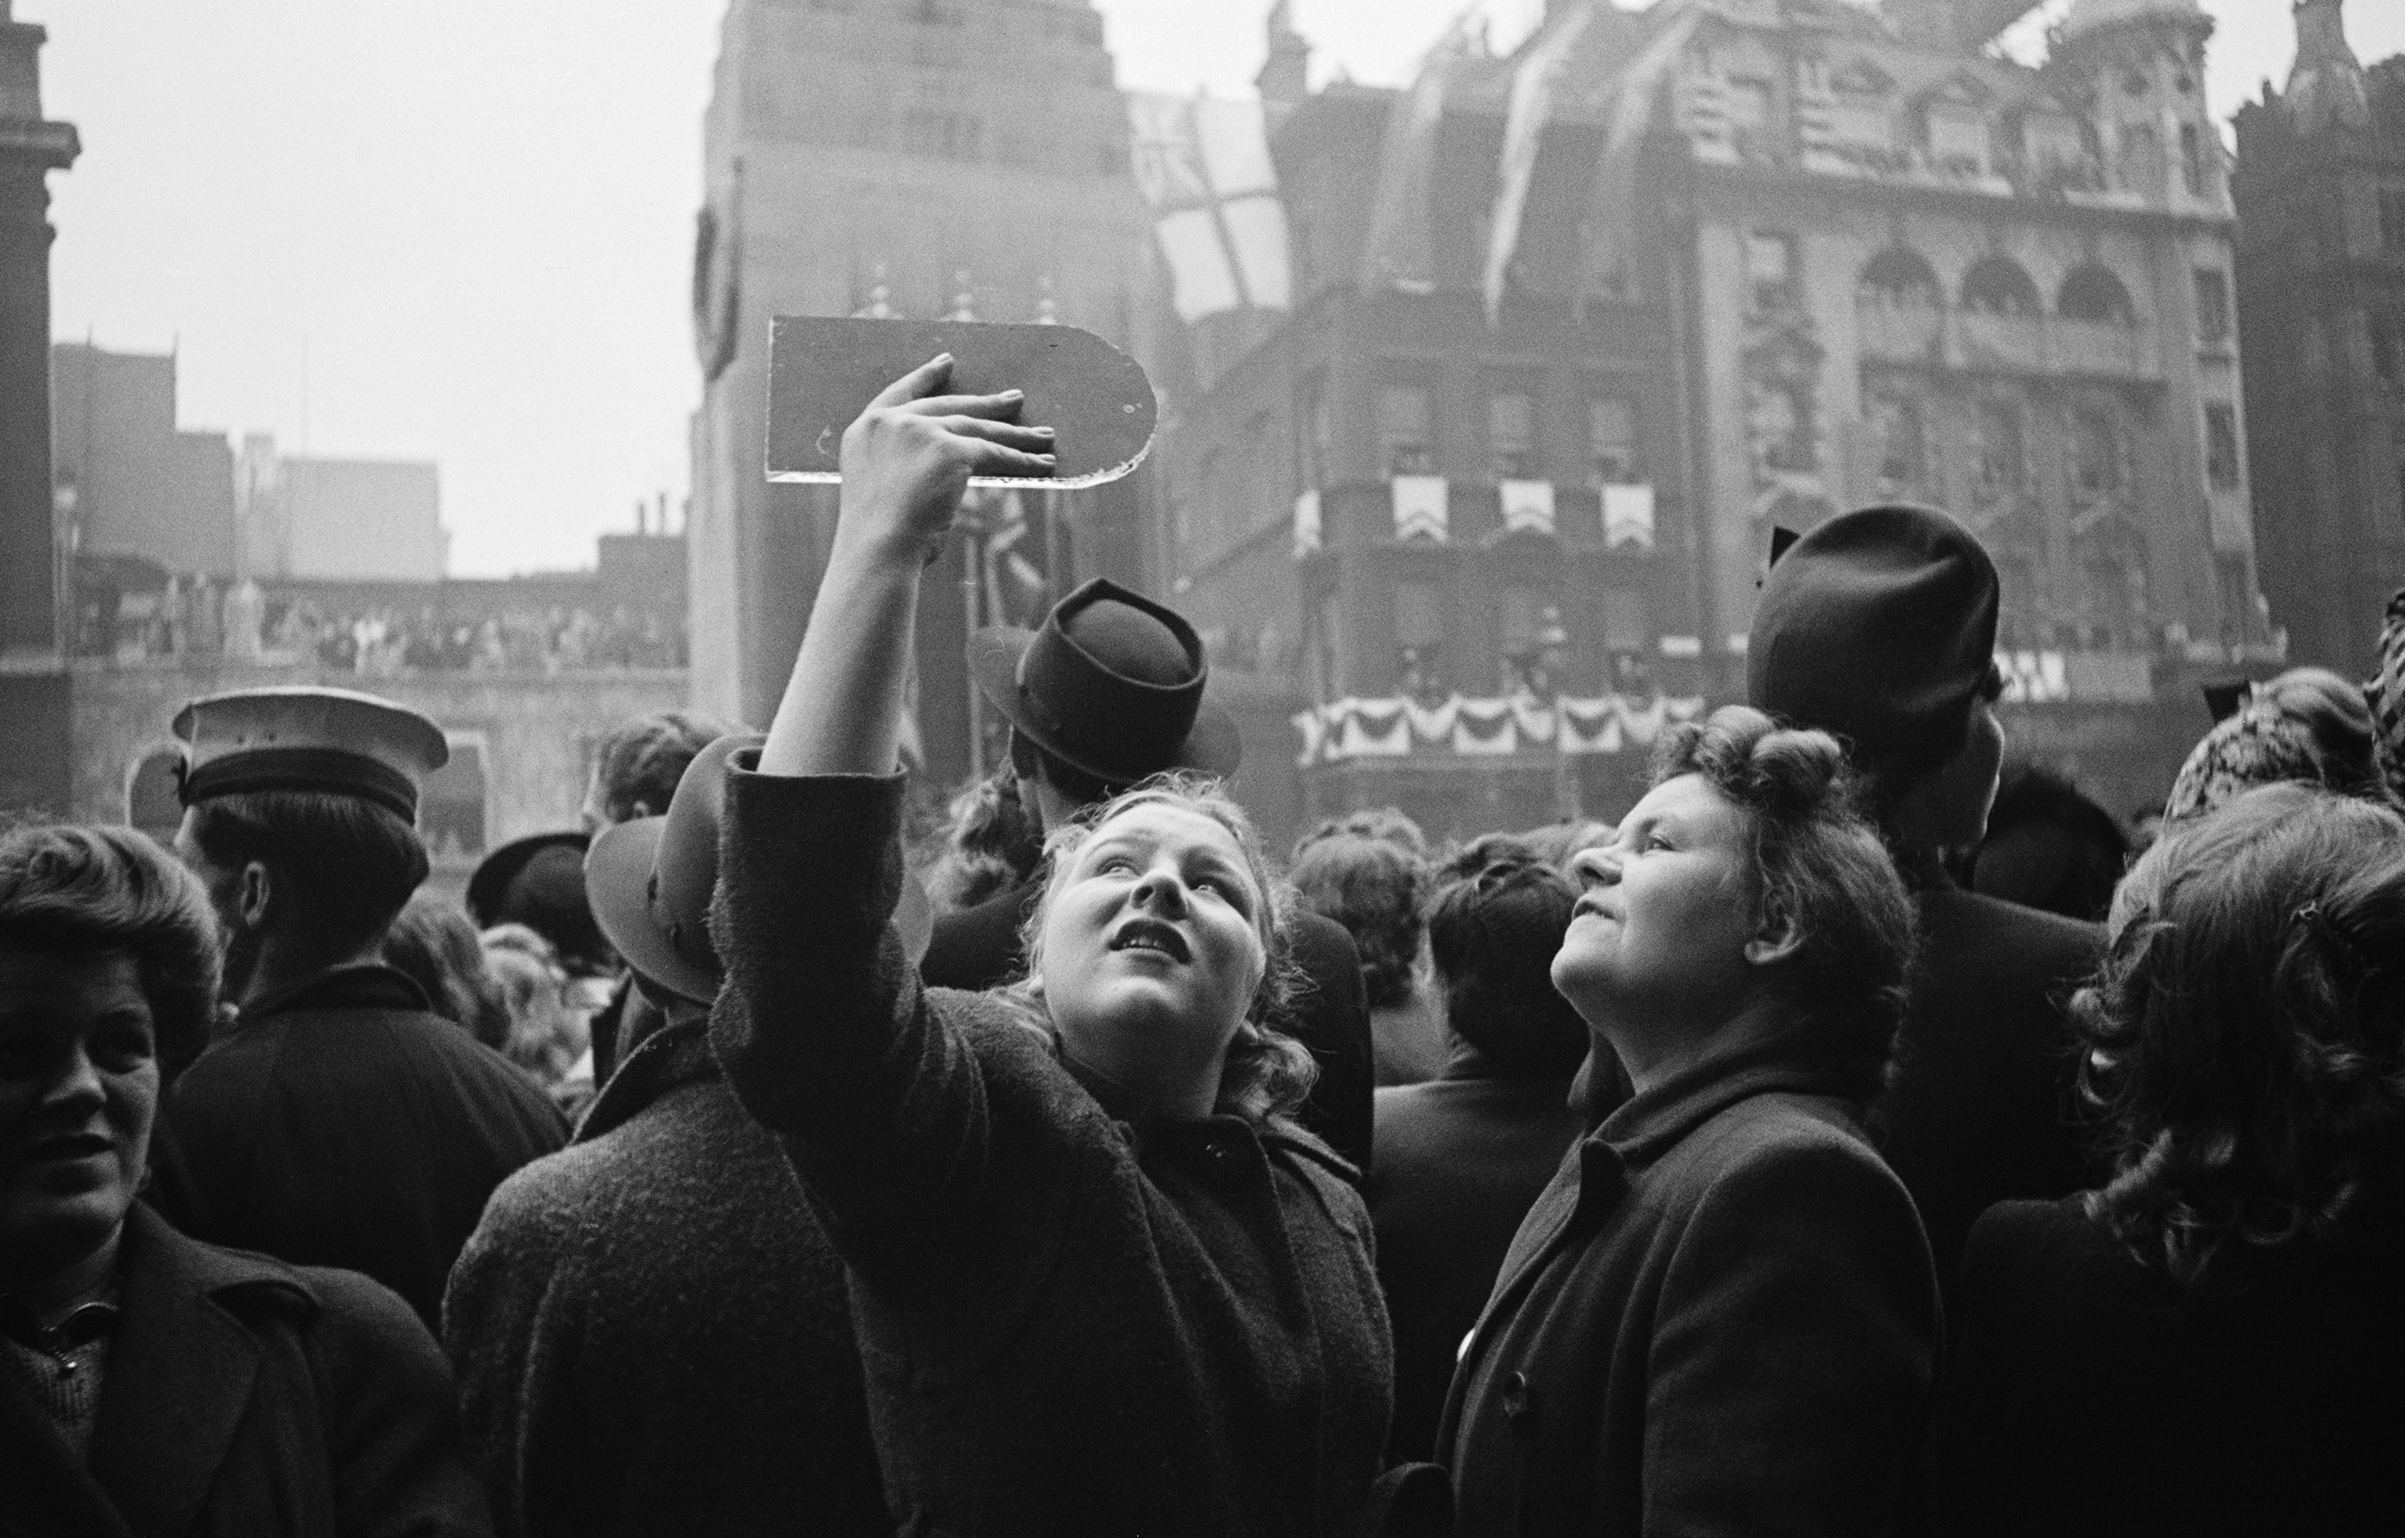 Spectators use hand-held mirrors to see over the crowd during the wedding of Queen Elizabeth II and Prince Philip, Duke of Edinburgh, at Westminster Abbey in London, Nov. 20, 1947.